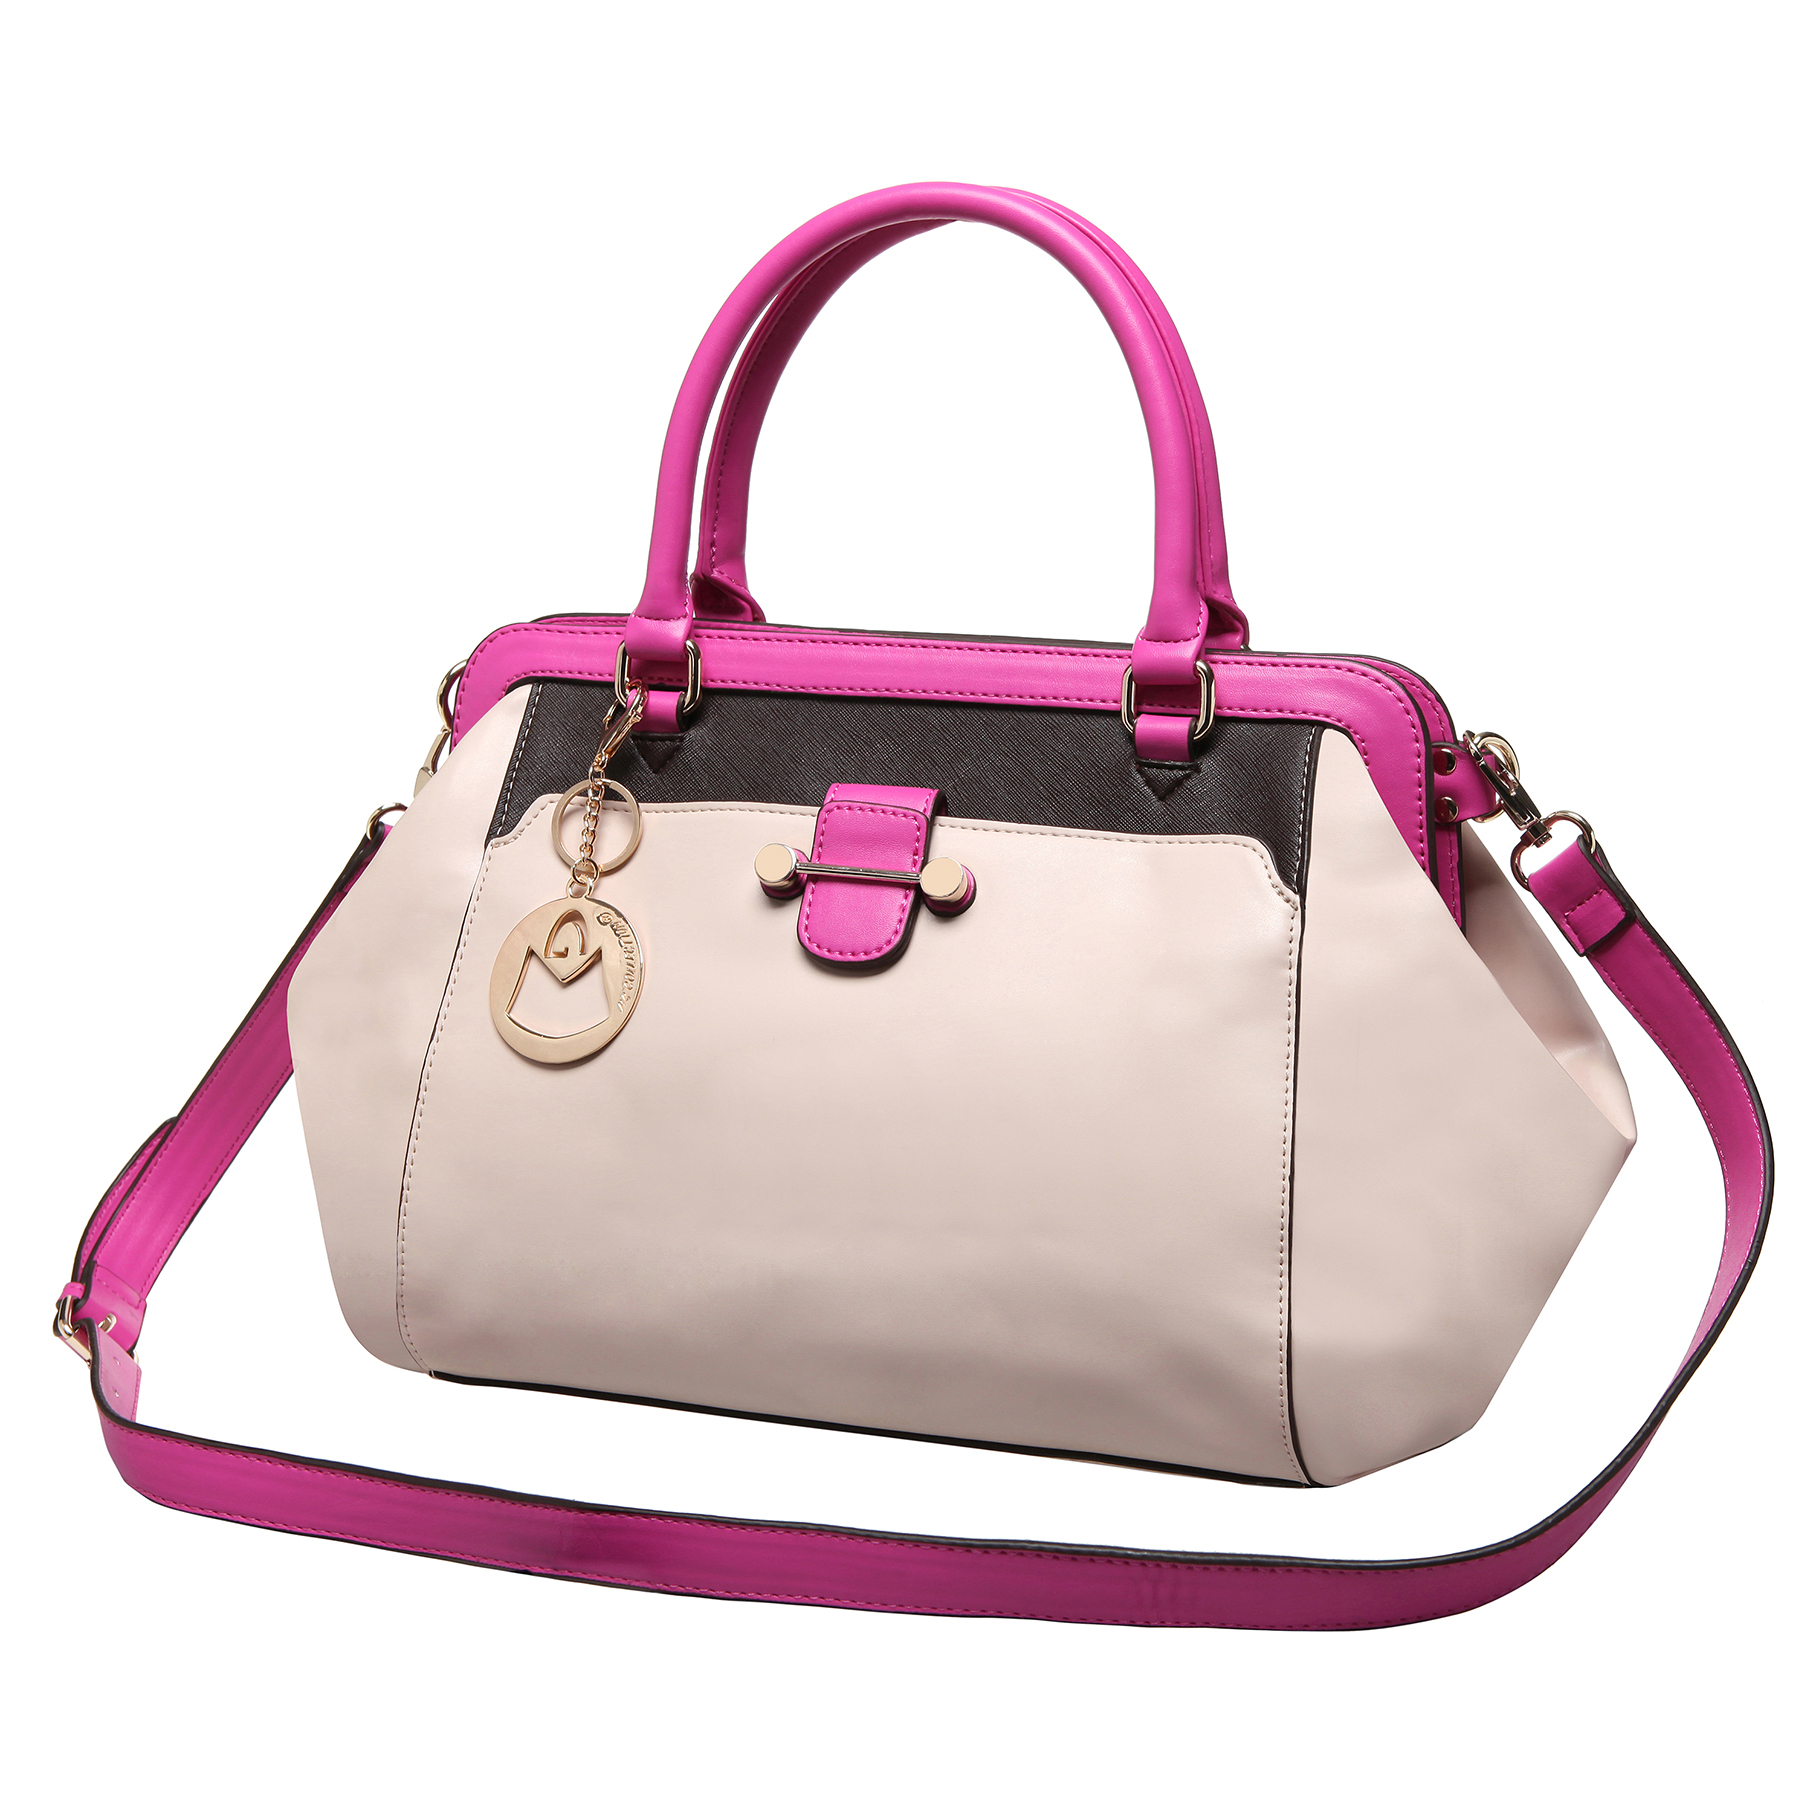 mg-collection-kaely-top-handle-tote-tb-h0603bei-3.jpg